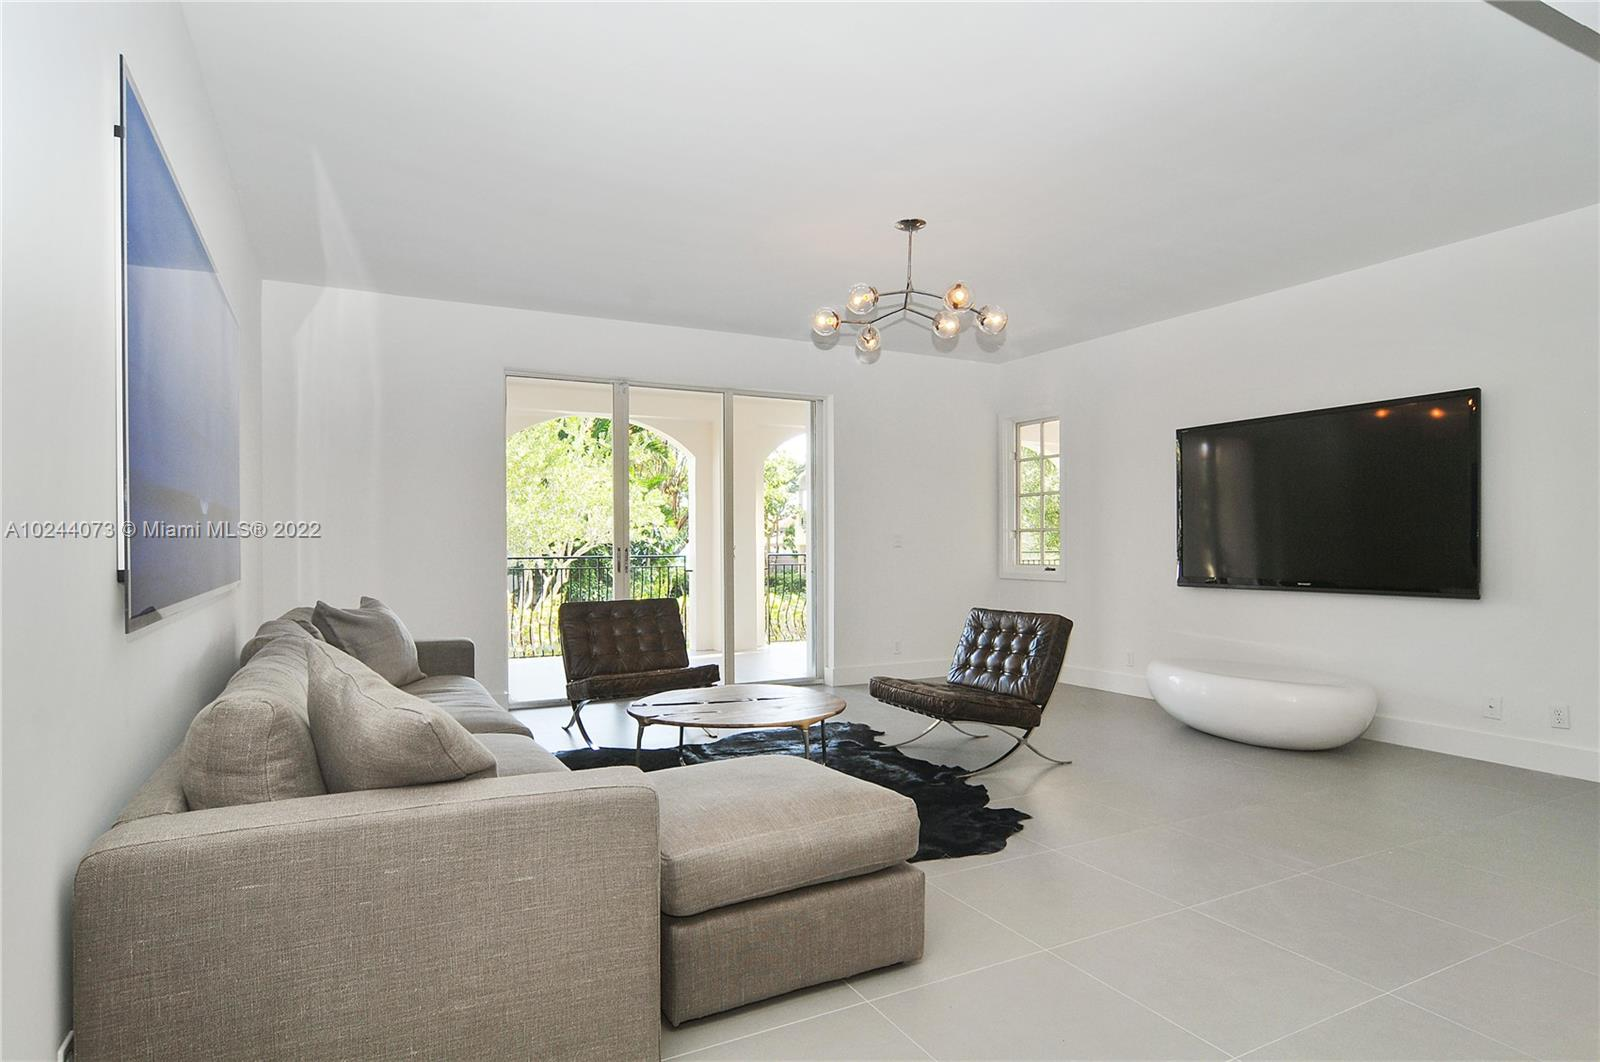 ground floor 3 bedroom in Seaside Village. Fully renovated kitchen and baths with designer finishes throughout. Great locaton steps to the beach club, spa and tennis center. Unique Open zoning allows for short term renting and great income potenial on Fisher Island. Offered fully turnkey for instant satisfacion and revenue